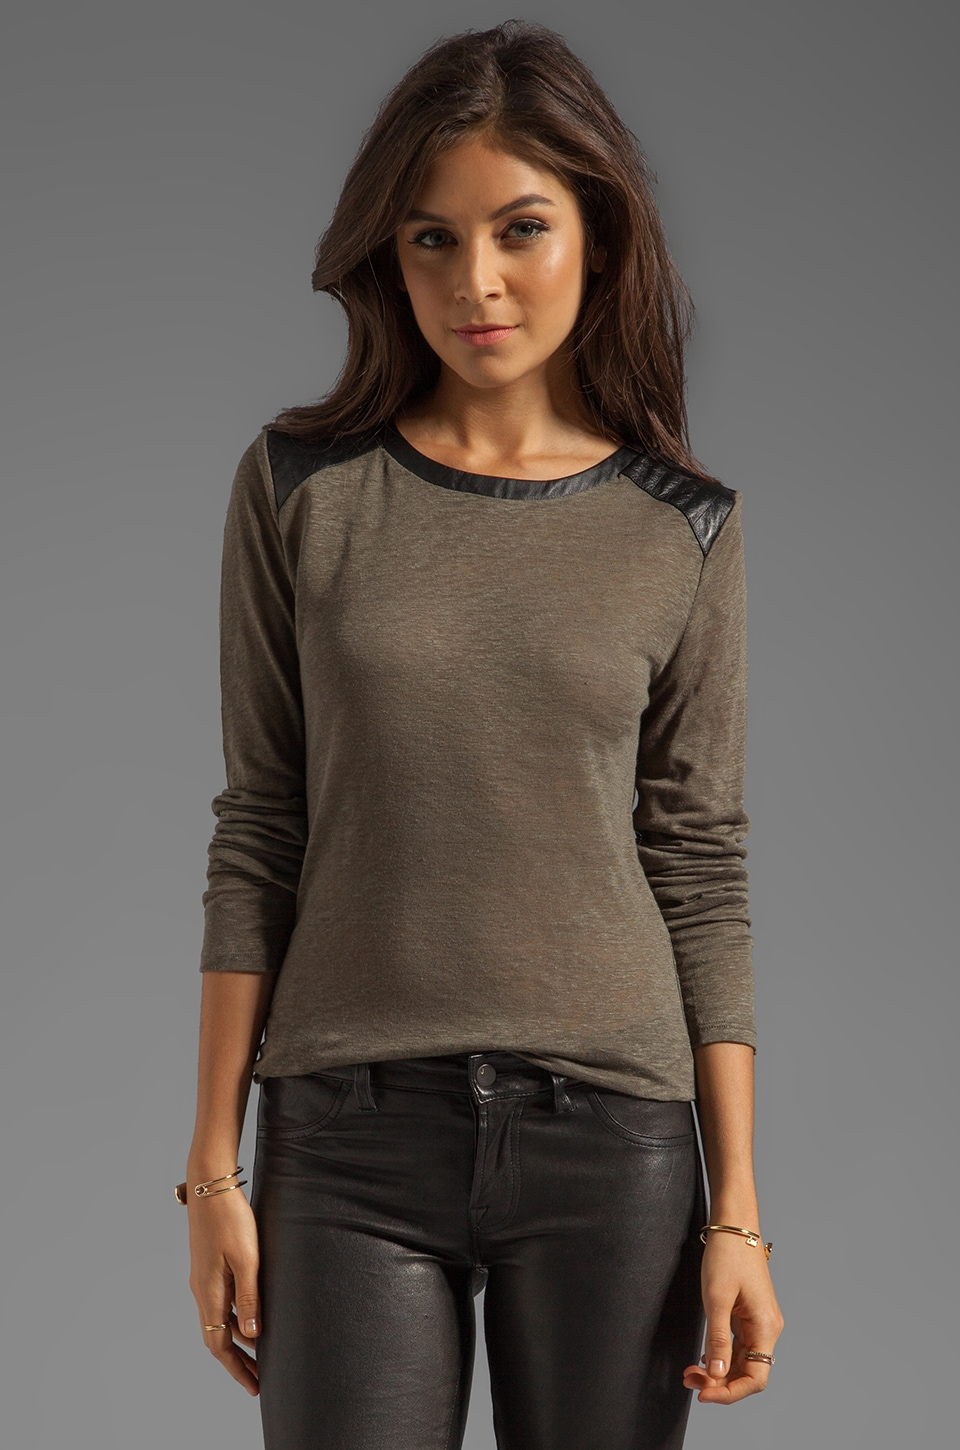 TOWNSEN Seattle Long Sleeve Top in Autumn